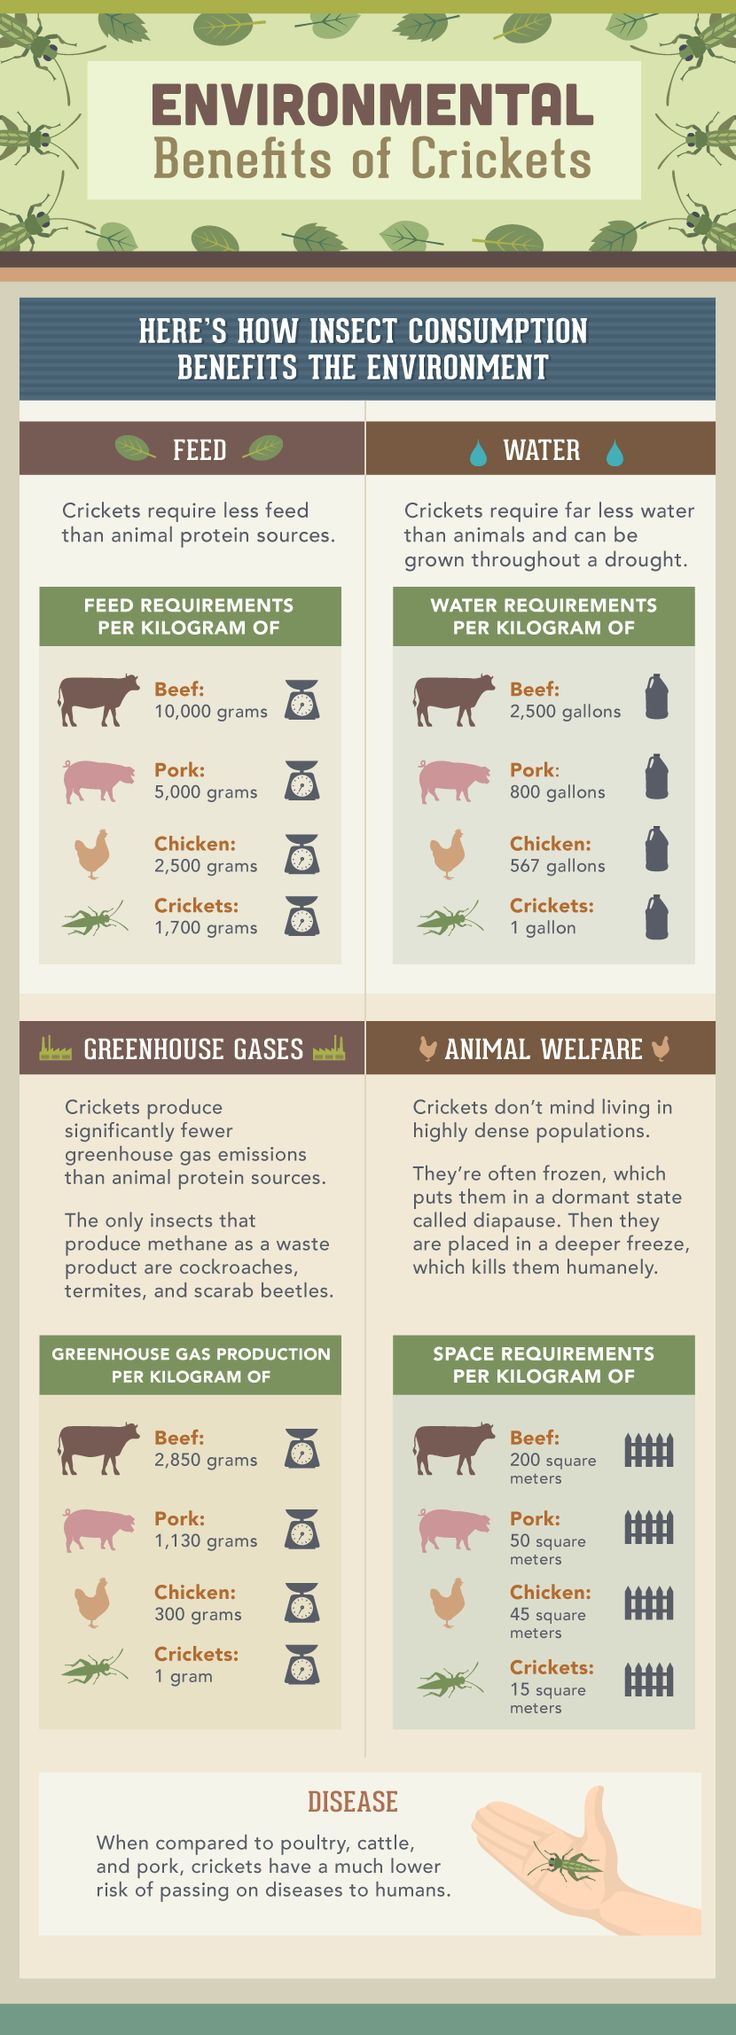 Eating Insects: Environmental Impact